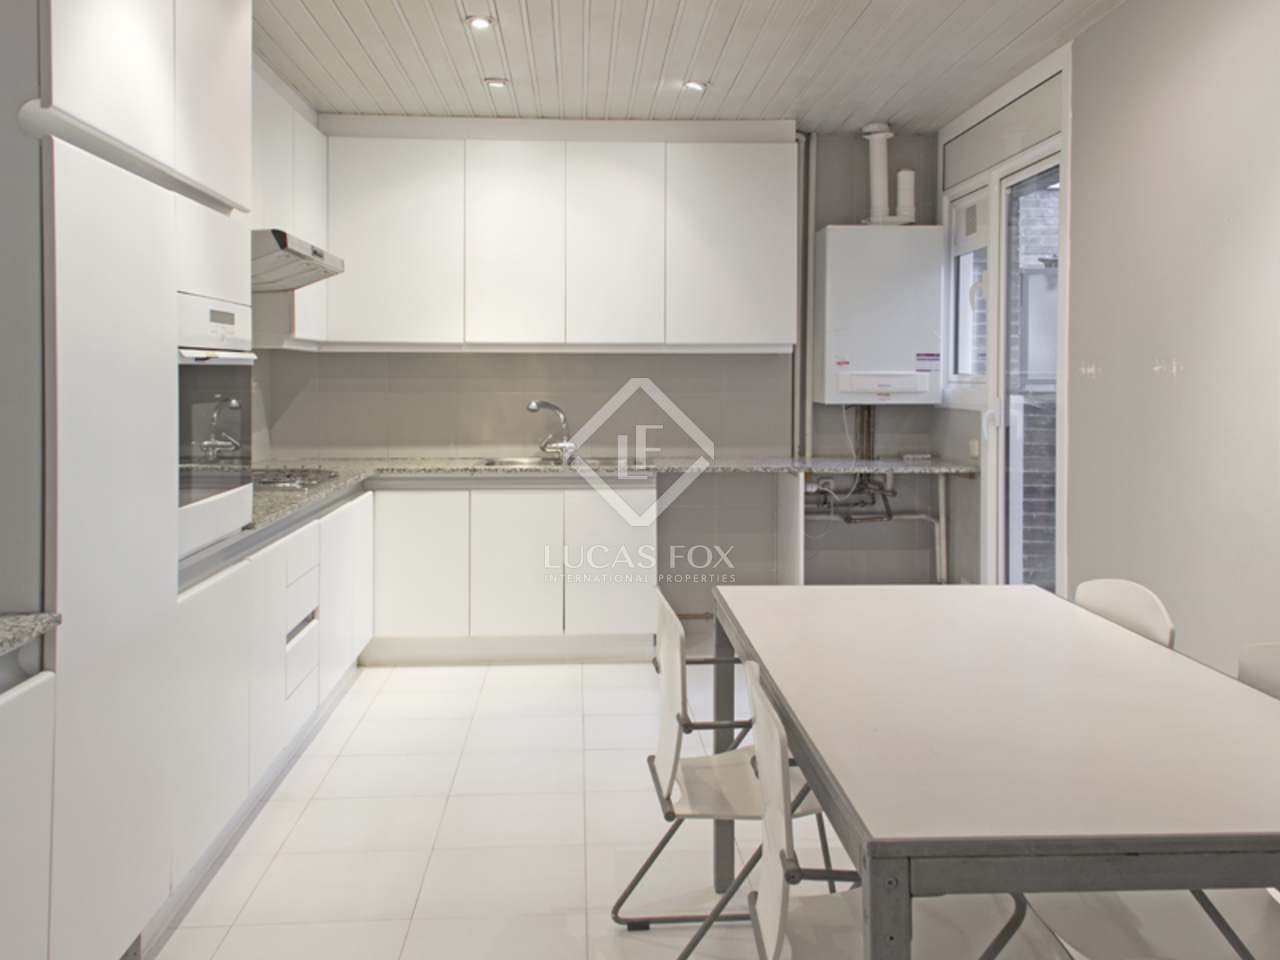 Large Townhouse For Rent In Alella On The Maresme Coast